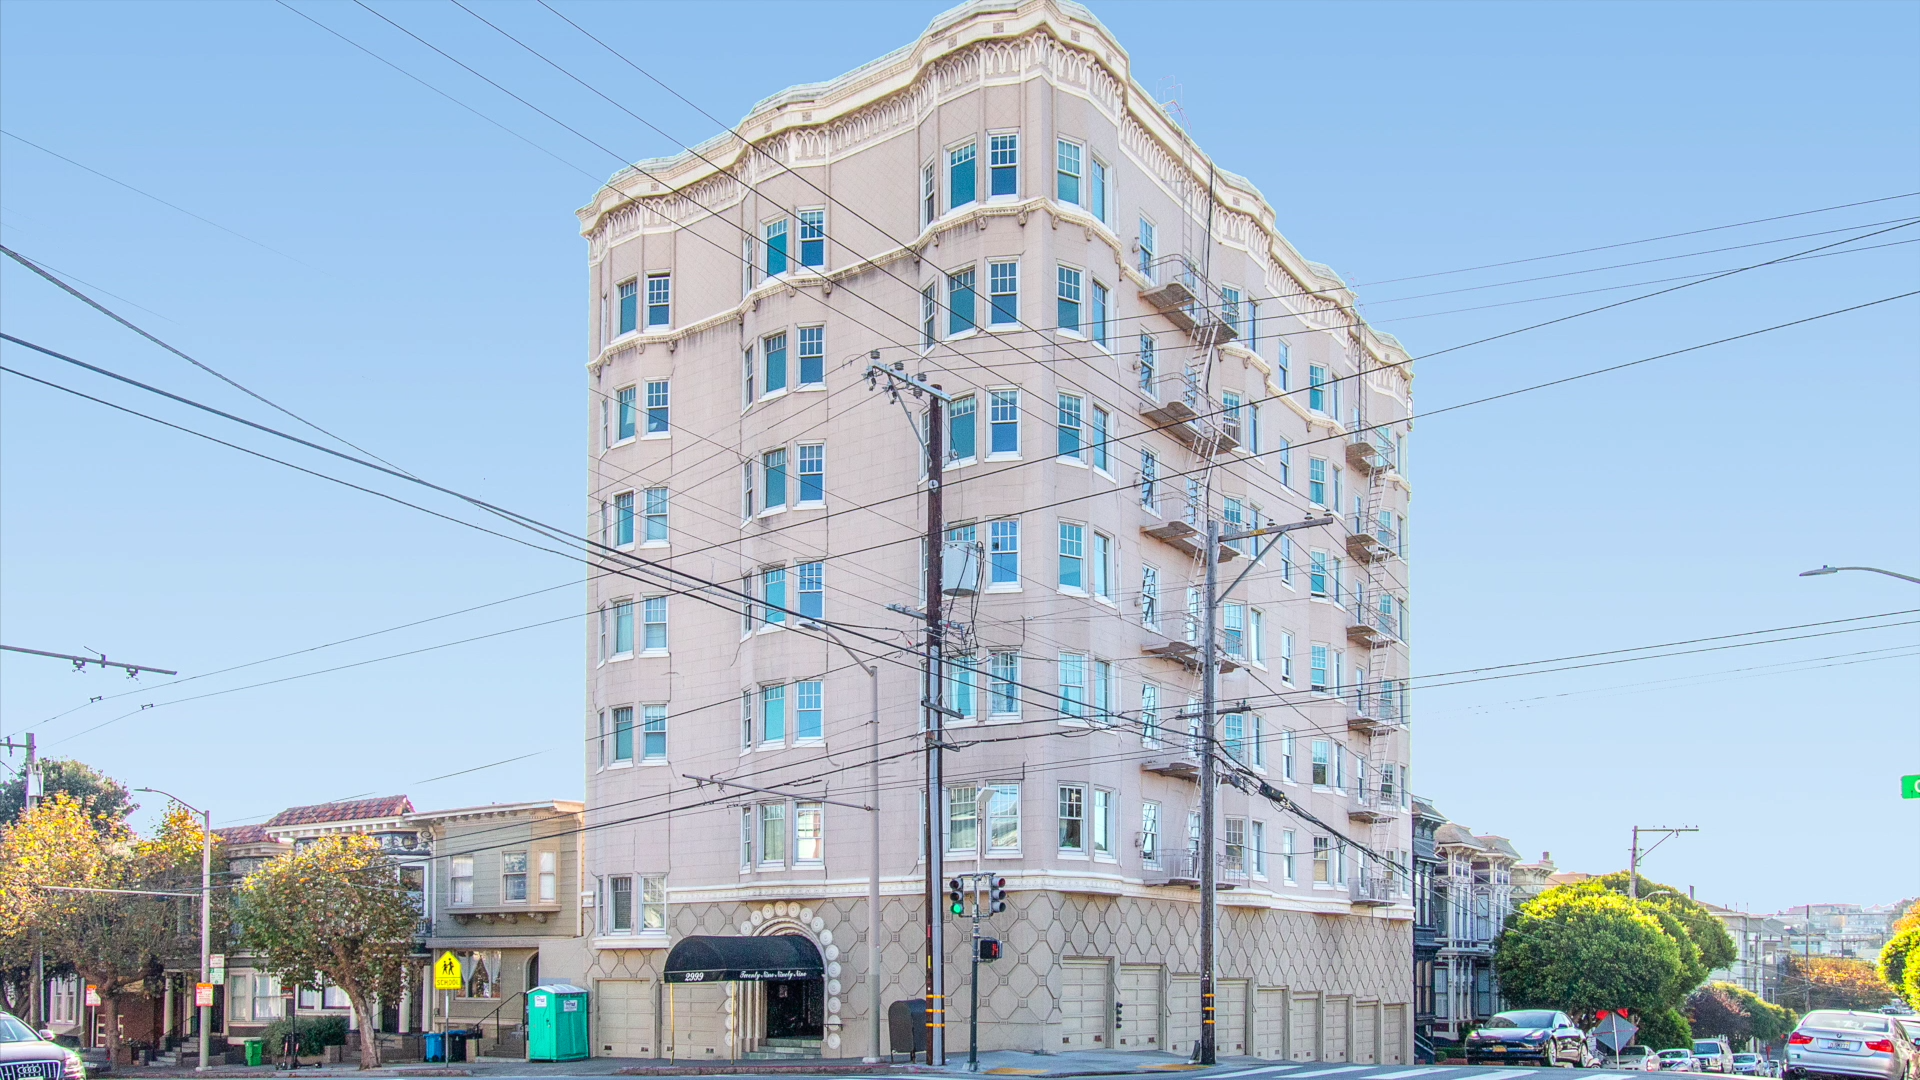 Vibrant Pacific Heights Condominium Spacious 1 BD/1 BA/2 CAR PKG  Open: SAT, 11/16, 1:00-3:00PM SUN, 11/17, 2:00-4:00PM  For more info call me at 415.516.5760 and visit   www.HELMRealEstate.com #HELMRealEstate #MarcusMillerRealEstate #sfrealestate #sanfranciscorealestate #bayarearealestate #sfhome #homesweethome #sanfrancisco #HappyClients #DesiredResults #ForSale #OpenHouse